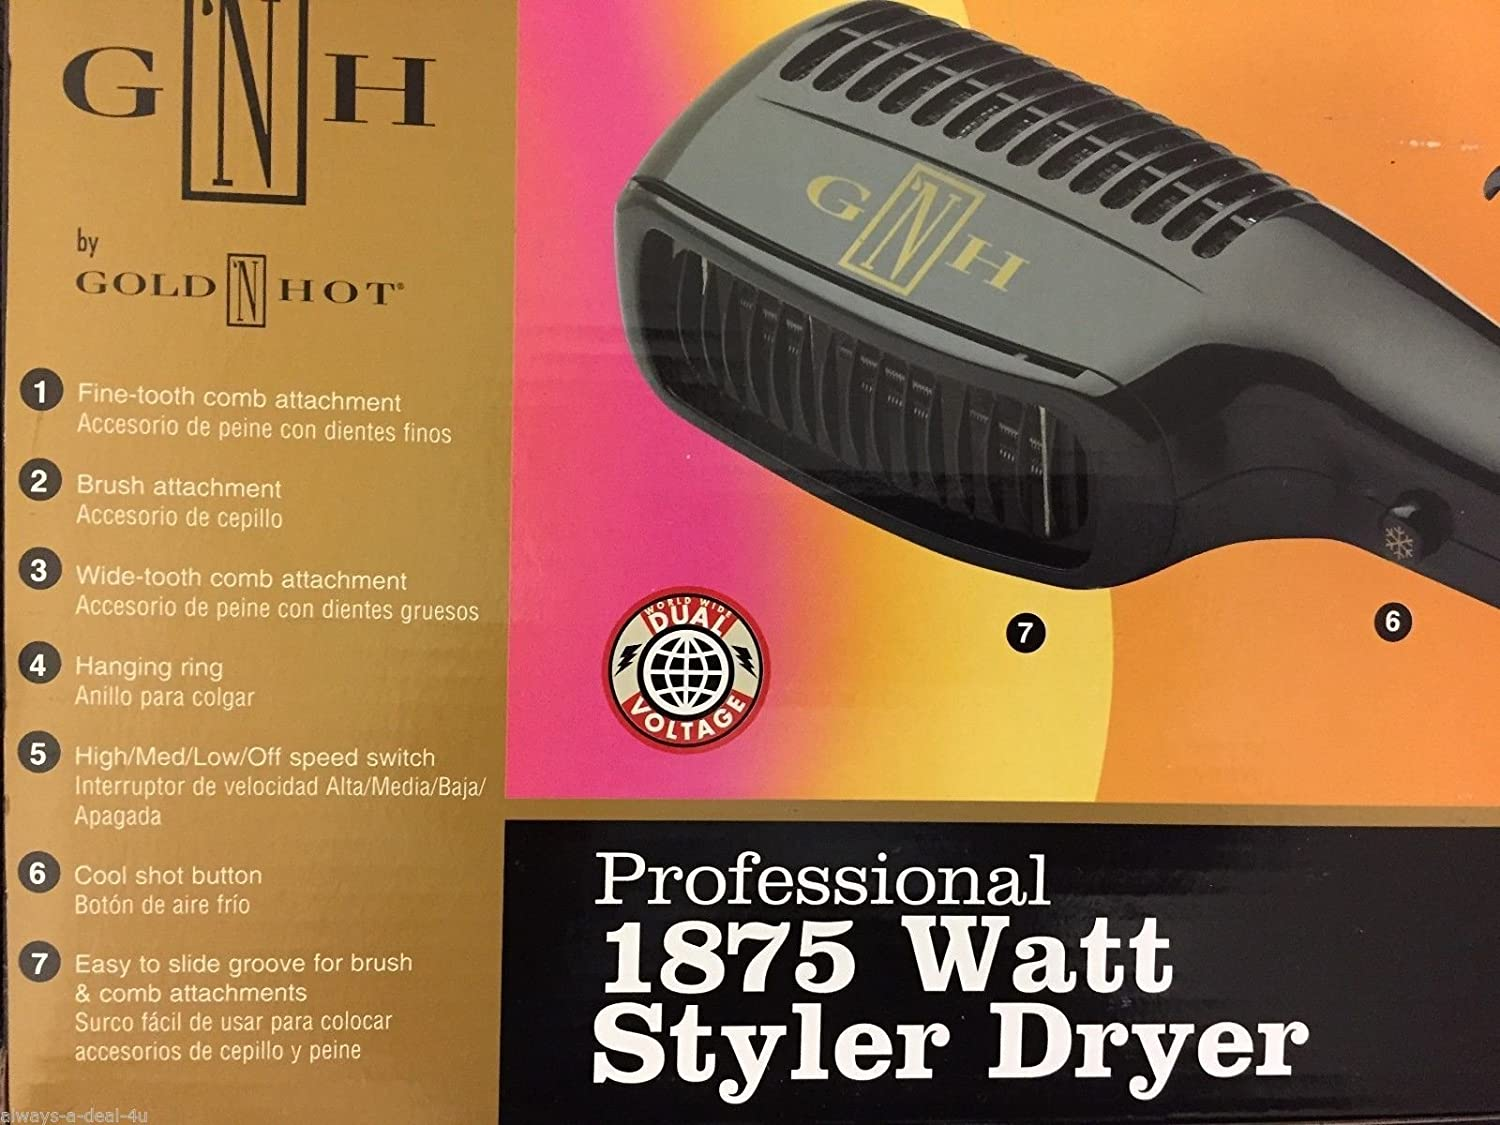 Amazon.com: Gold N Hot Gh2275 Professional 1875 Watt Styler Dryer with Comb Attachments by Gold N Hot: Beauty